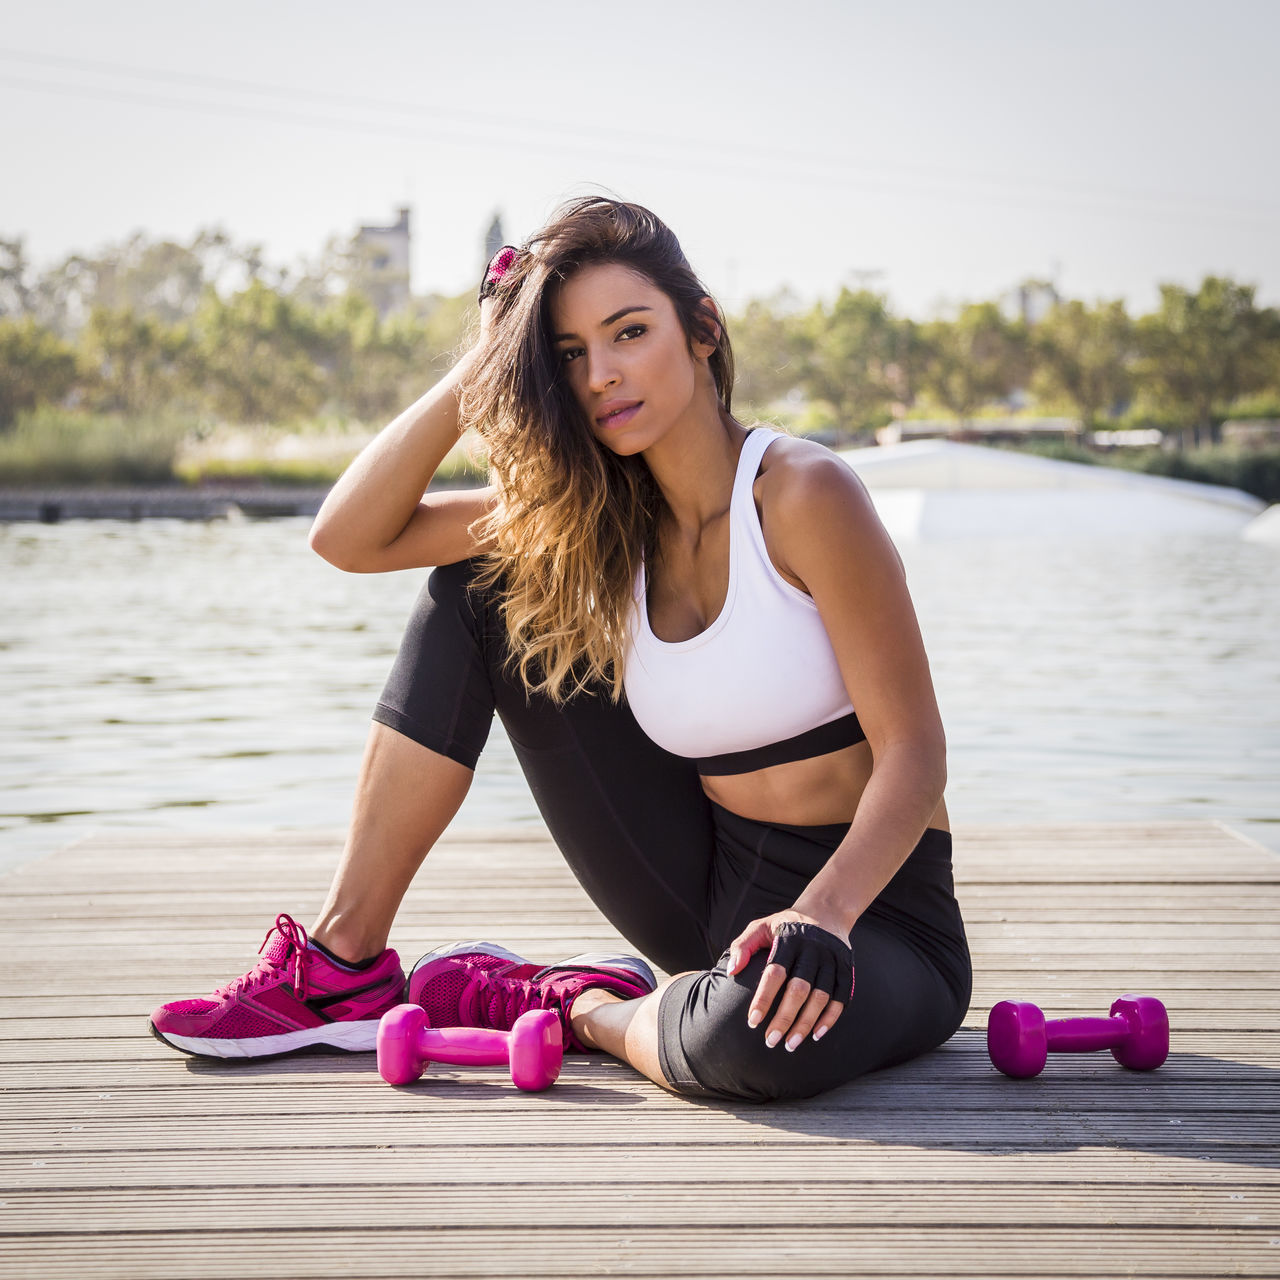 Activewear Adult Athletic Attractive Beautiful Beauty Cardio Dumbbells Exercise Fitness Footing Girl Healty Jogging Lifestile Outdoors Park SP Sportswoman Sportwear Sun Woman